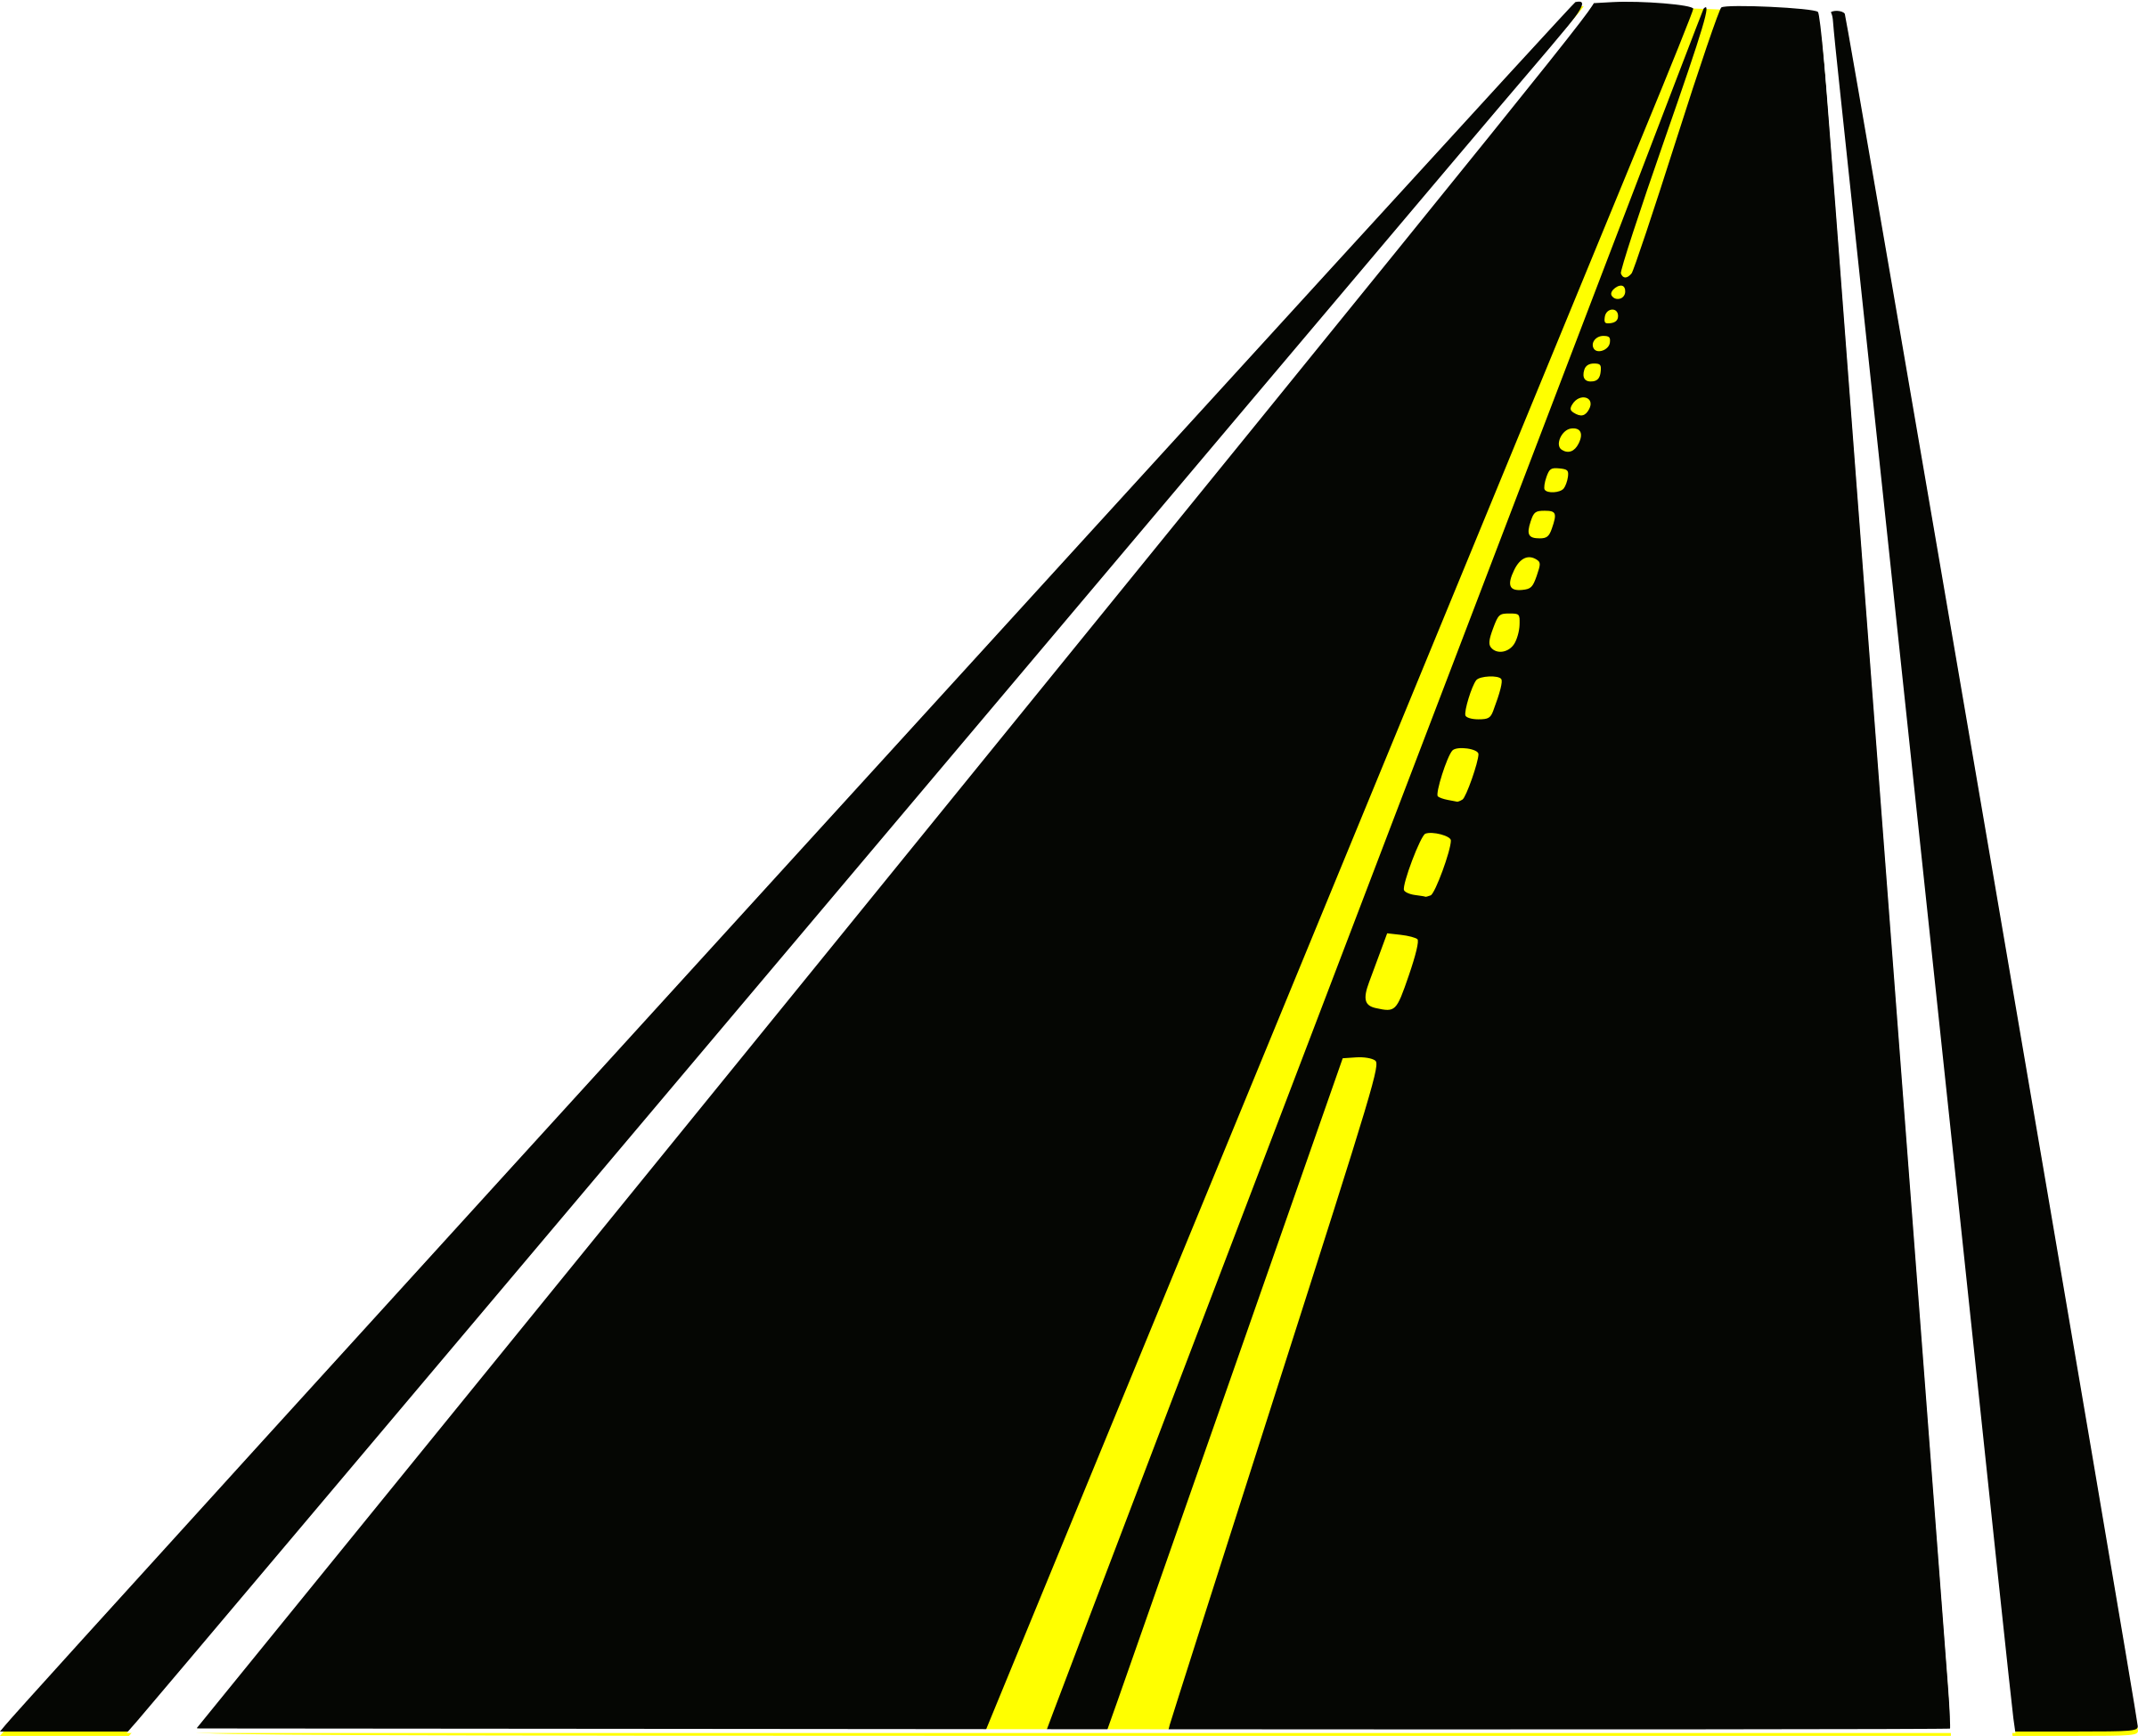 highway clipart curved road